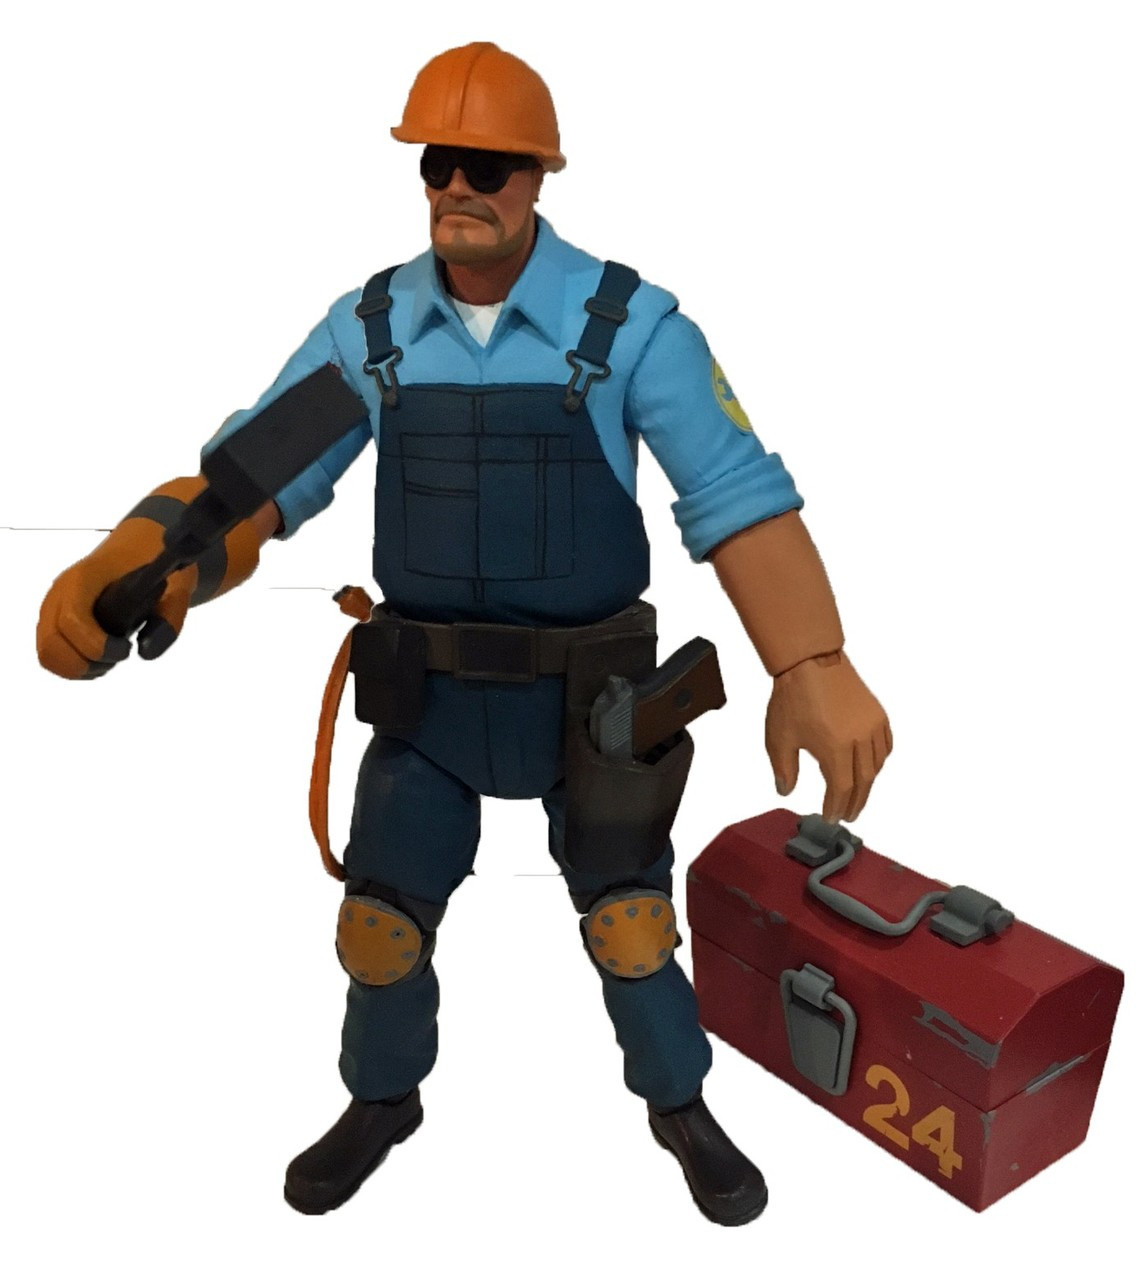 Neca Team Fortress 2 Blu Series 3 5 The Engineer 7 Action Figure